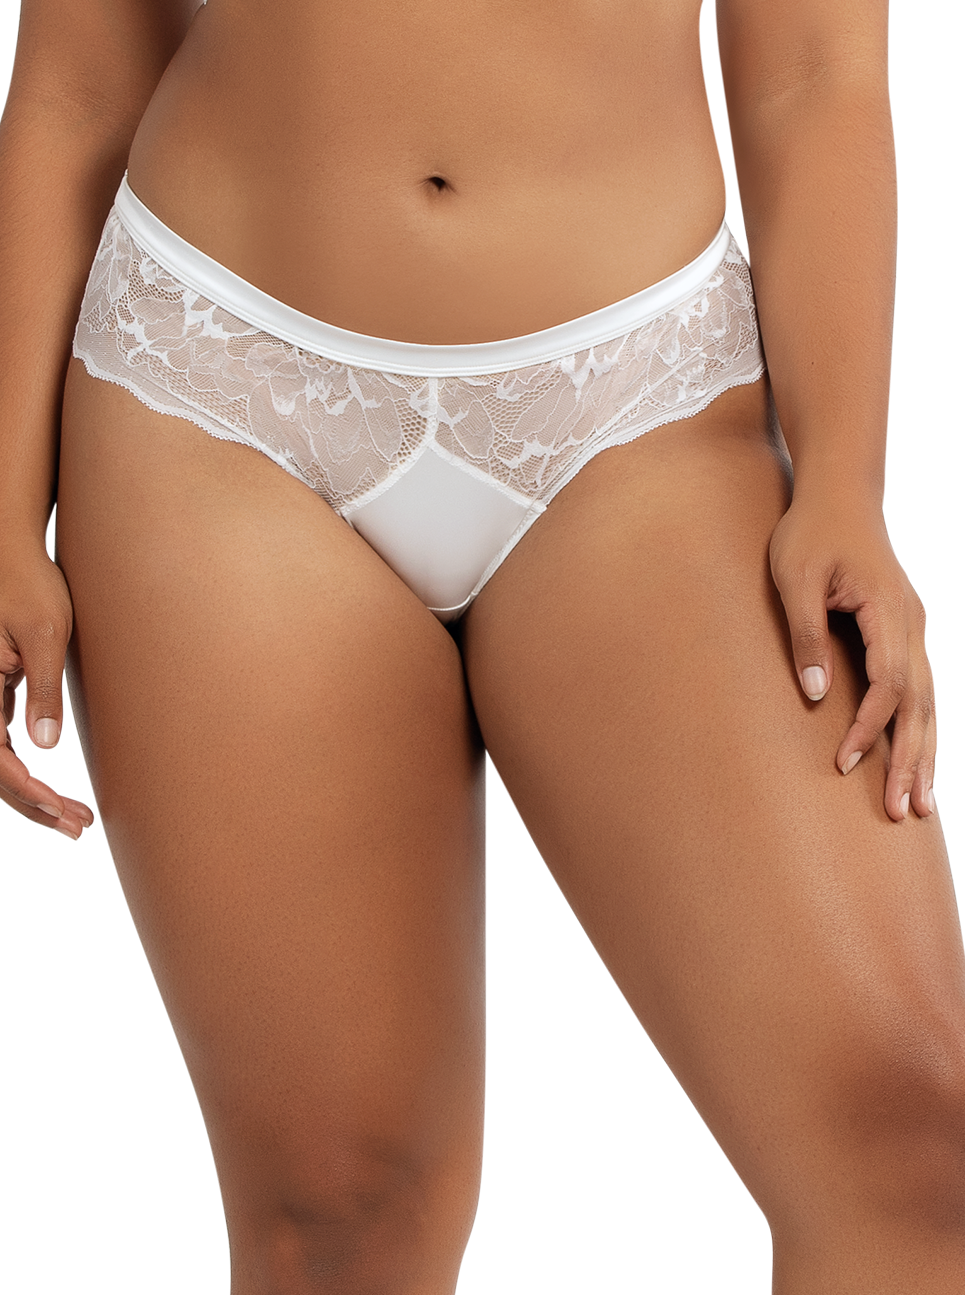 PARFAIT Vanessa HipsterP5793 PearlWhite Front - Vanessa Hipster Pearl White P5793